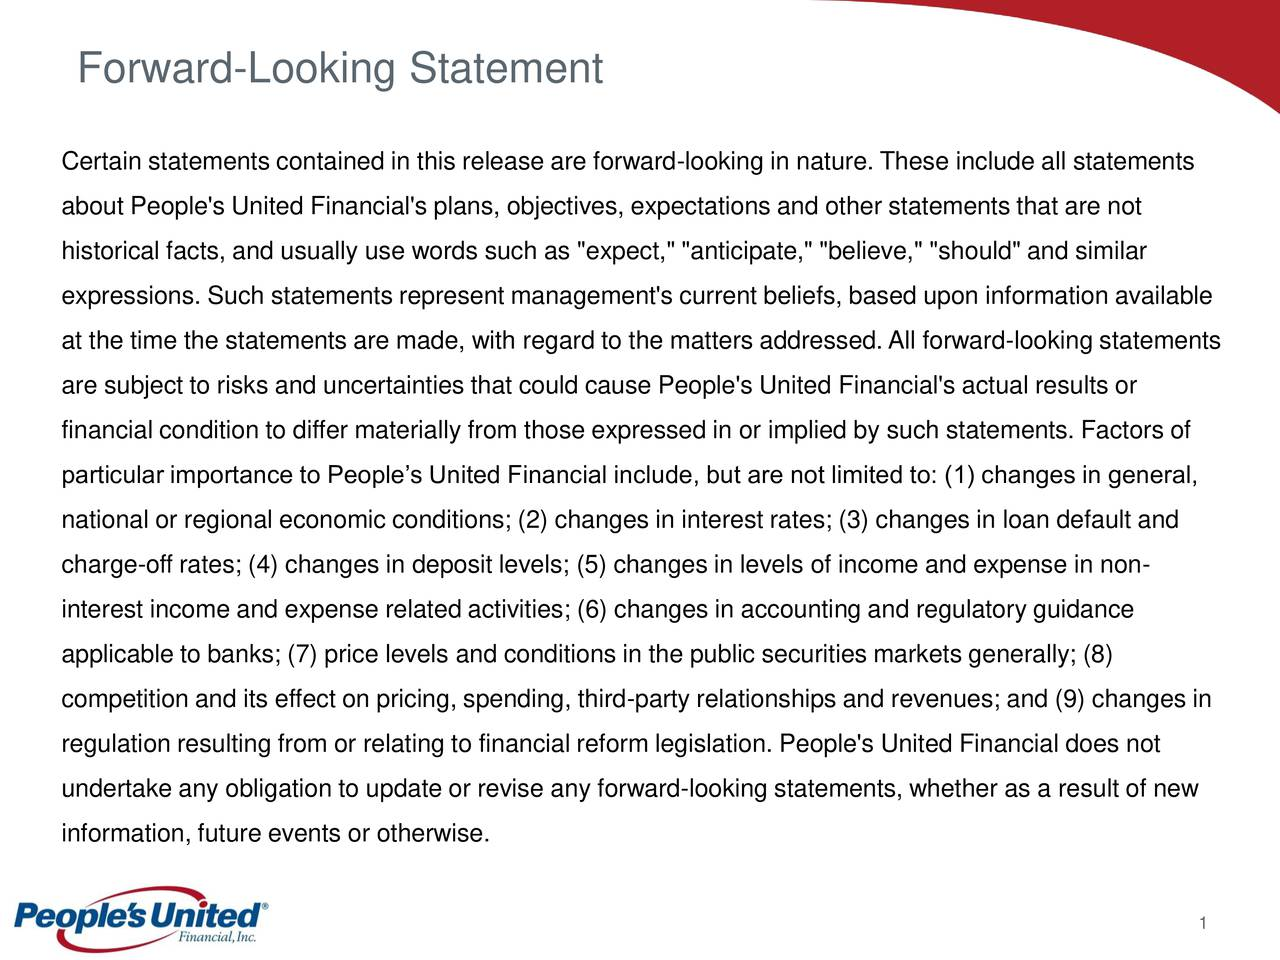 """Certain statements contained in this release are forward-looking in nature. These include all statements about People's United Financial's plans, objectives, expectations and other statements that are not historical facts, and usually use words such as """"expect,"""" """"anticipate,"""" """"believe,"""" """"should"""" and similar expressions. Such statements represent management's current beliefs, based upon information available at the time the statements are made, with regard to the matters addressed.All forward-looking statements are subject to risks and uncertainties that could cause People's United Financial's actual results or financial condition to differ materially from those expressed in or implied by such statements. Factors of particular importance to Peoples United Financial include, but are not limited to: (1) changes in general, national or regional economic conditions; (2) changes in interest rates; (3) changes in loan default and charge-off rates; (4) changes in deposit levels; (5) changes in levels of income and expense in non- interest income and expense related activities; (6) changes in accounting and regulatory guidance applicable to banks; (7) price levels and conditions in the public securities markets generally; (8) competition and its effect on pricing, spending, third-party relationships and revenues; and (9) changes in regulation resulting from or relating to financial reform legislation. People's United Financial does not undertake any obligation to update or revise any forward-looking statements, whether as a result of new information, future events or otherwise. 1"""